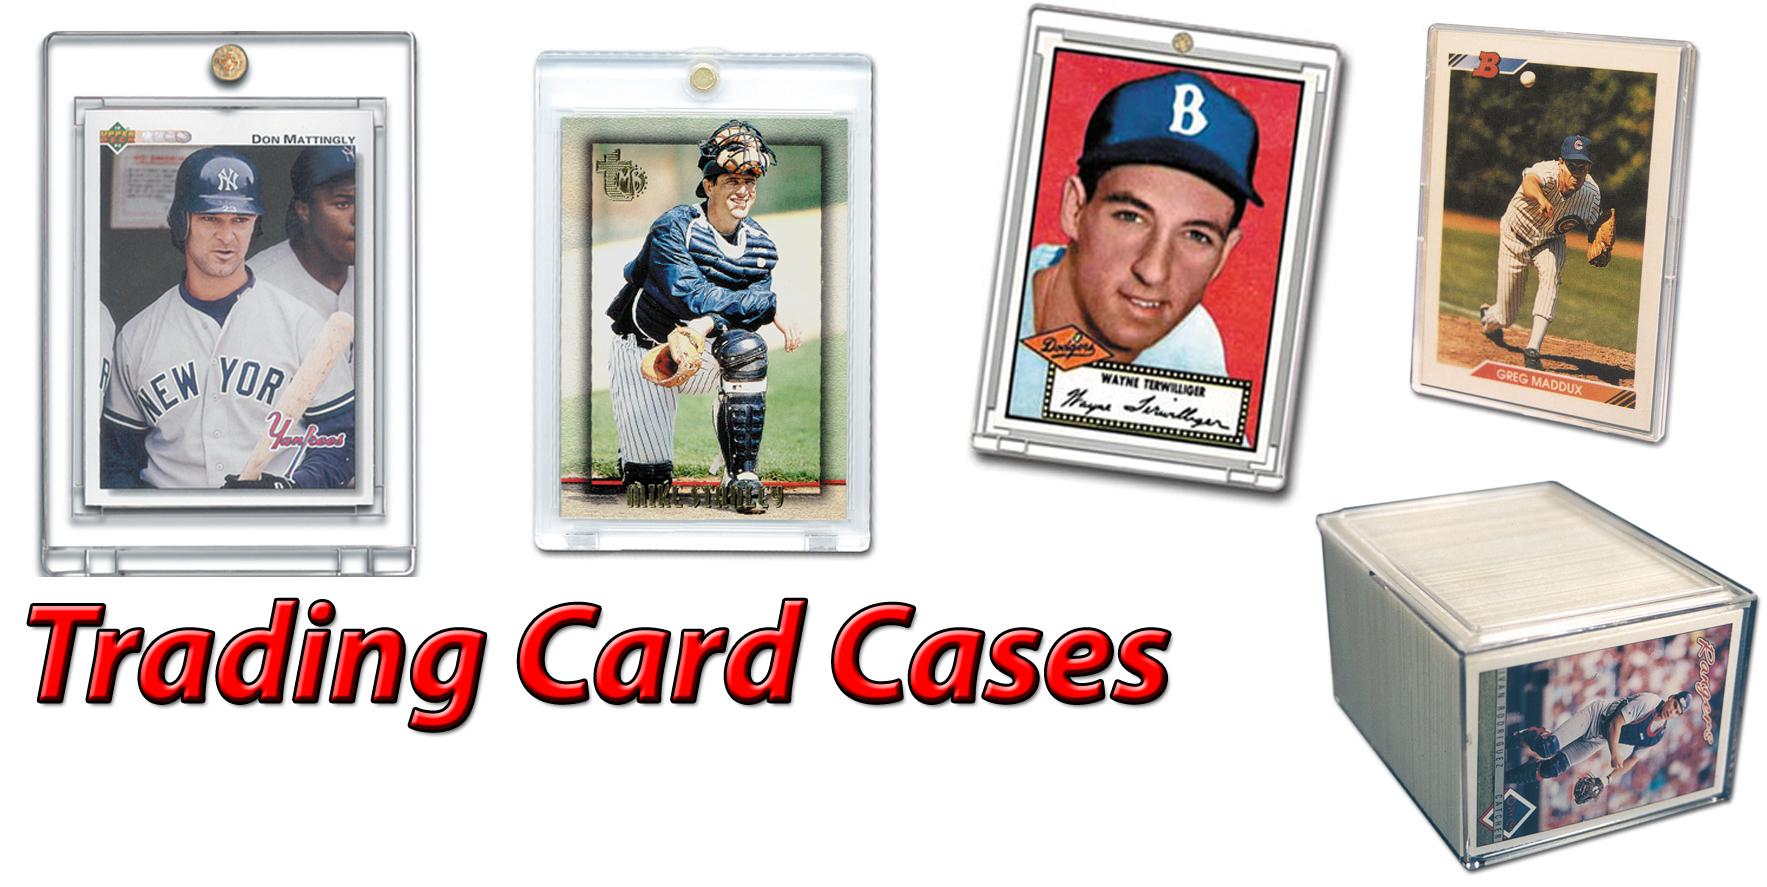 Trading Card Cases